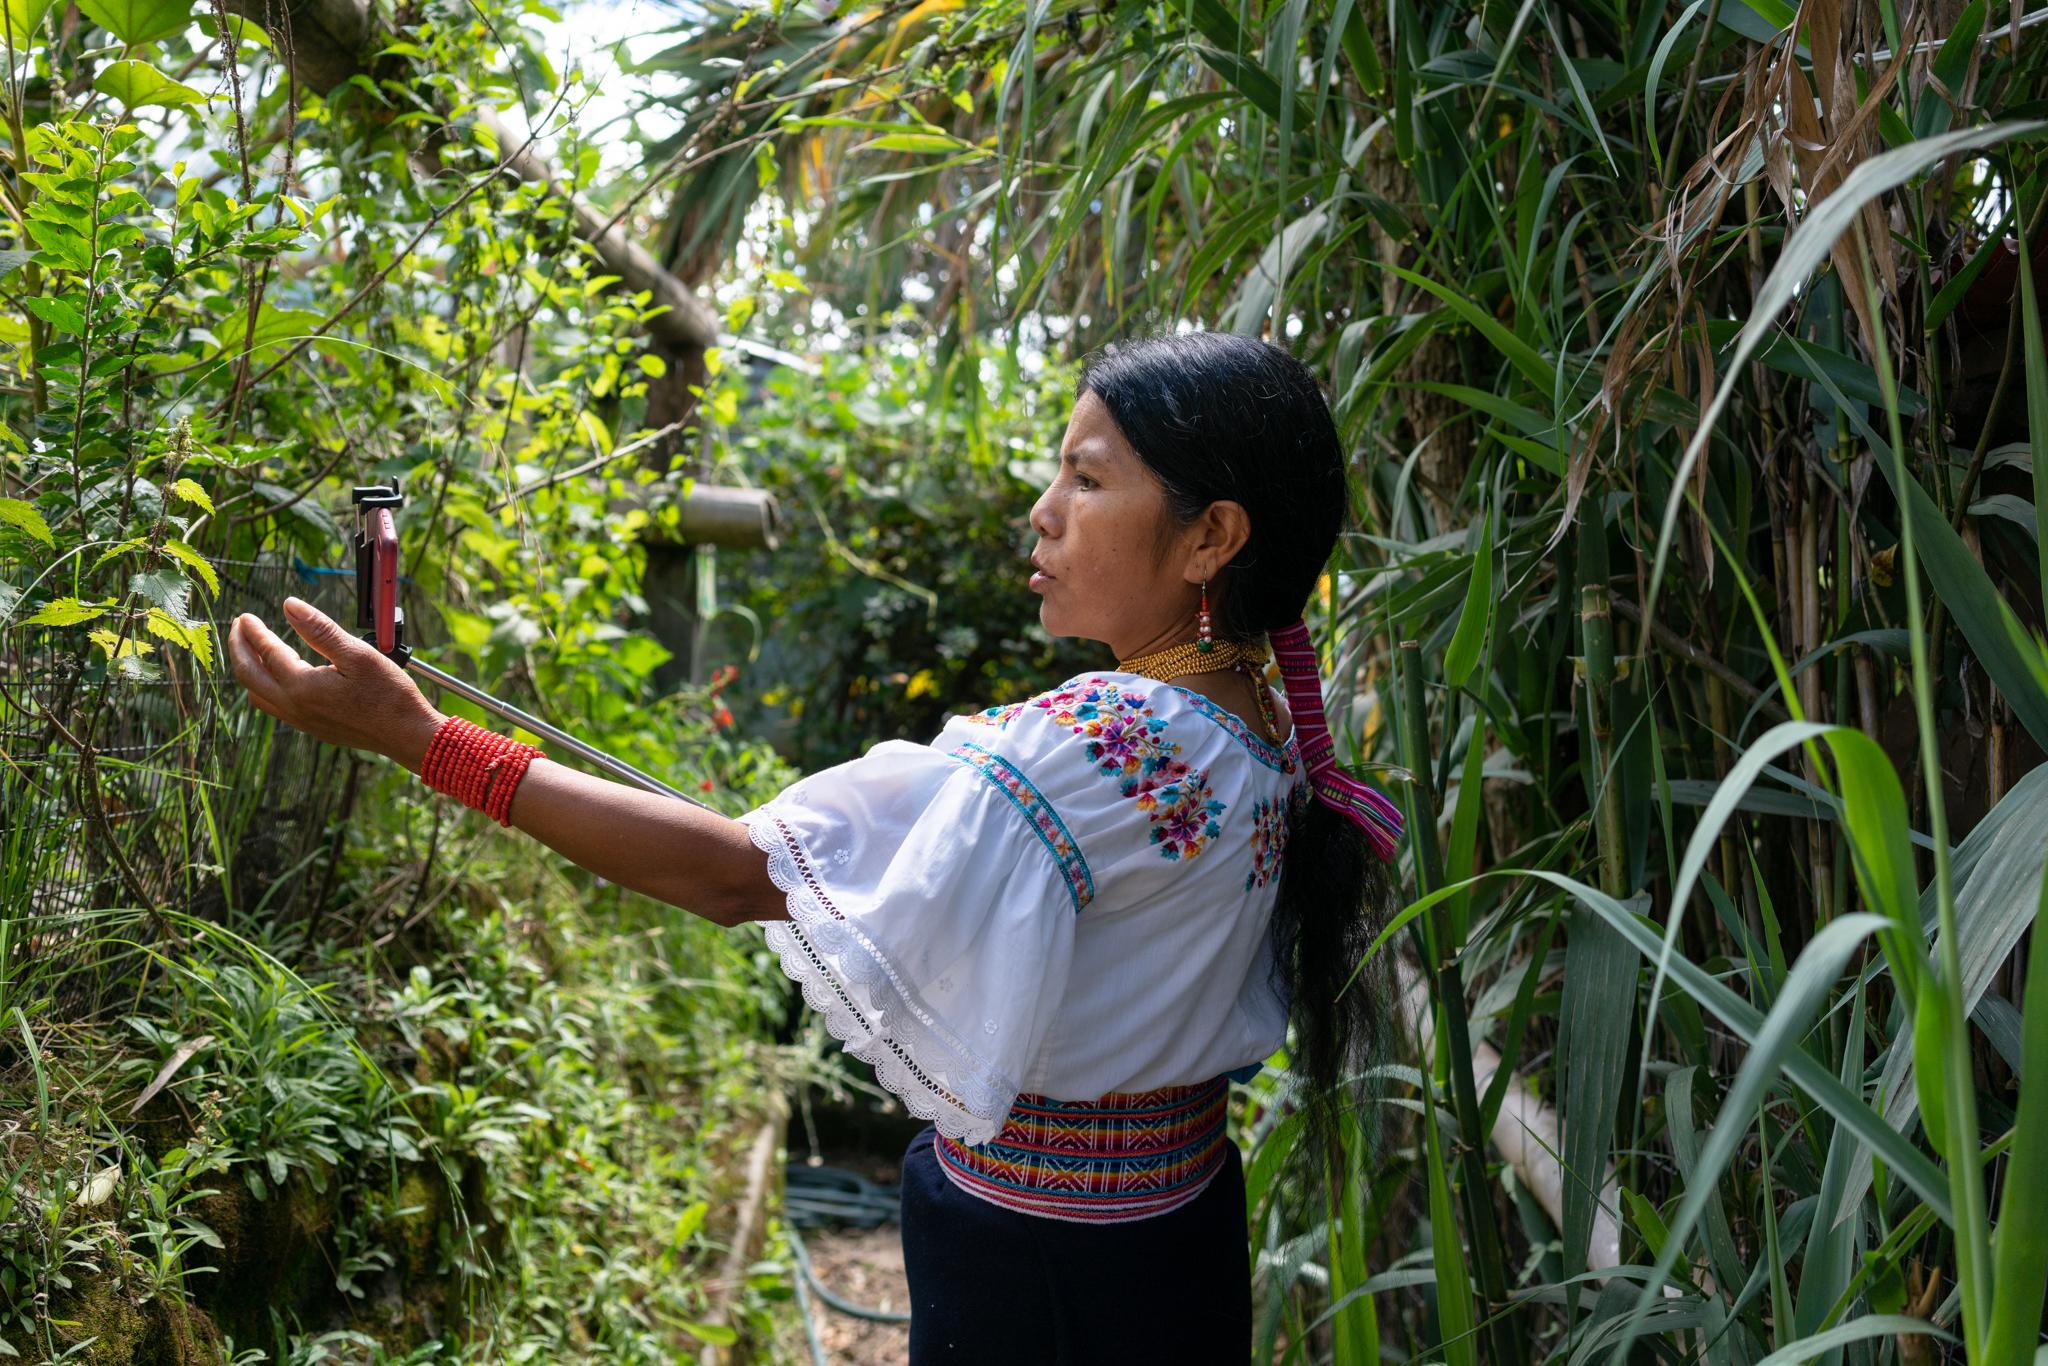 Laura Santillan makes videos to share with her students via WhatsApp. She teaches in Kichwa language about the parts of the body and the variety of plants in the school garden. Yachay Wasi, Bilingual Intercultural Community Education Center, is an institution that works with contributions from the Government and, above all, with donations and small monthly financial contributions from some families of the students. The school has 70 students between 5 and 13 years old. The monthly value per child is $ 35 and for many families it is priceless. They propose a community education, based on the values ​​and wisdom of indigenous, respect of mother earth, combining with contemporary knowledge. Most of its students are migrant farmers from other regions of the country, so learning from the school's biodiverse crops is a requirement. The school started illegally after the indigenous uprising in the 90s, its principals are indigenous. In 2001 they legalized the school. Due to the Pandemic-Covid19 the teachers prepare their classes and share them with the children through WhatsApp and Zoom. Most students have Internet access at home or on their cell phones. Most families have a single digital device. Teachers print assignments weekly for families who do not have internet acces. The teachers' challenge is to generate educational material and that the students do not stop studying. Photographer: Ana María Buitron. Quito, Ecuador. Laura Santillan hace videos para compartirlos con sus estudiantes vía Whatsapp. Enseña en lengua Kichwa sobre las partes del cuerpo y sobre las plantas del huerto de la escuela. Yachay Wasi, Centro Educativo Comunitario Intercultural Bilingüe. Es una institución que funciona con aportes del Estado y se sostiene sobre todo con donaciones y pequeños aportes económicos mensuales de algunas familias de los estudiantes. La escuela tiene 70 estudiantes entre 5 y 13 años. El valor mensual por niño es $35 y para muchas familias resulta